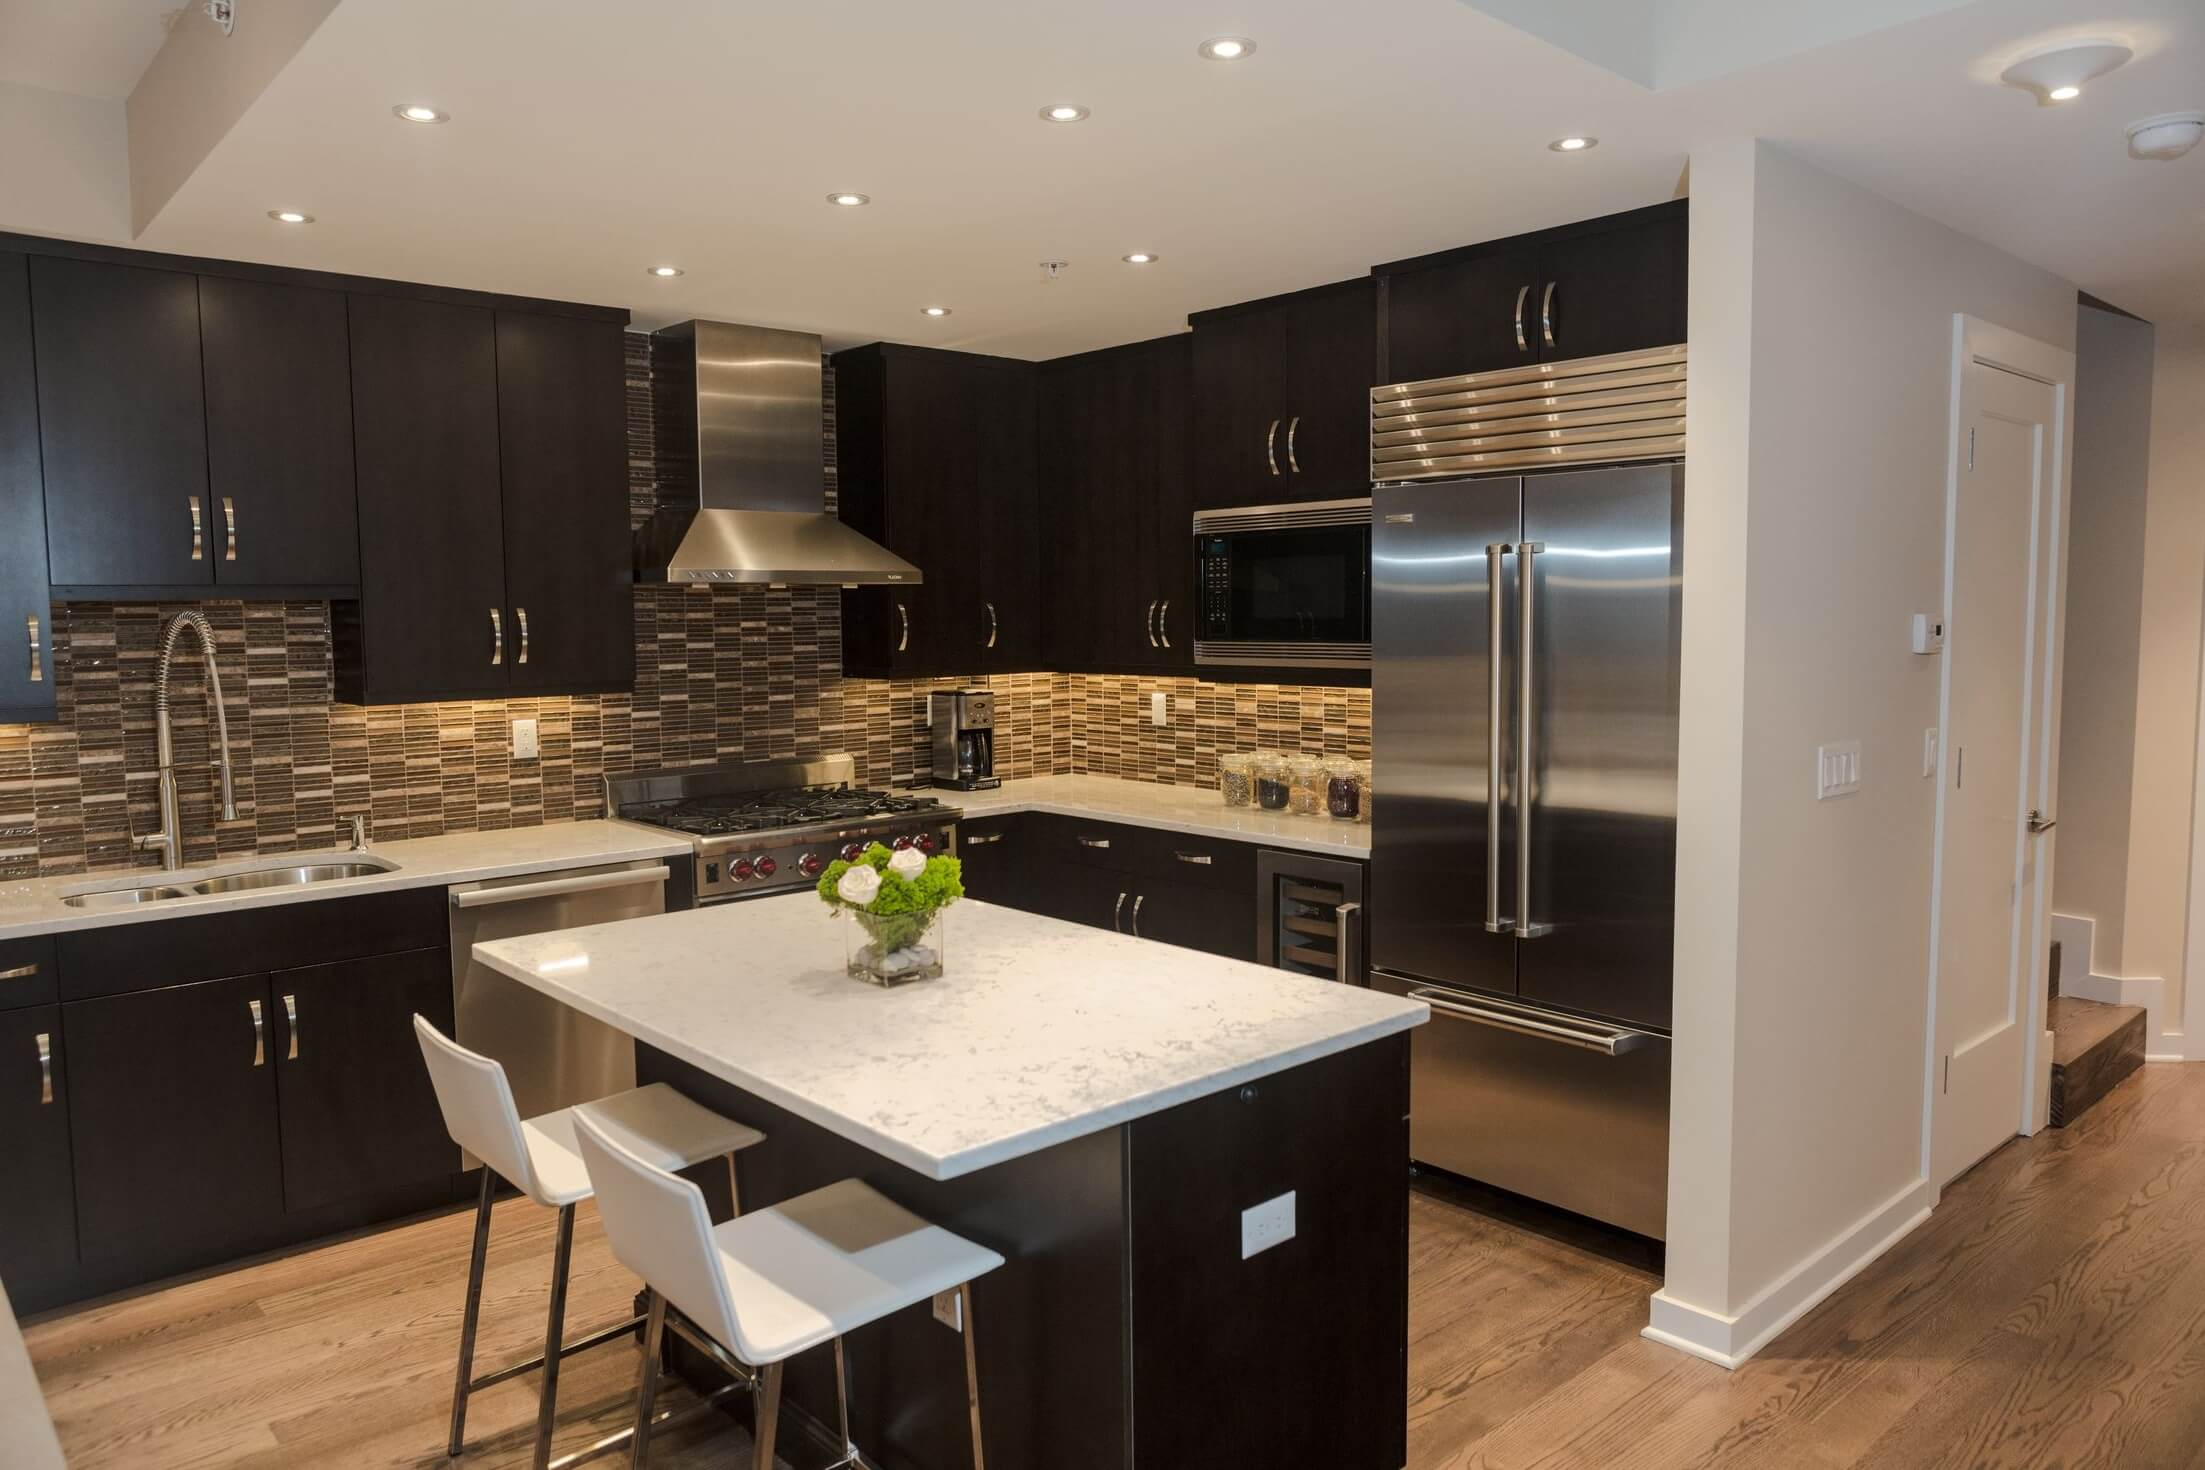 rta kitchen cabinets why you should use them in your kitchen rta kitchen cabinets RTA Kitchen Cabinets black